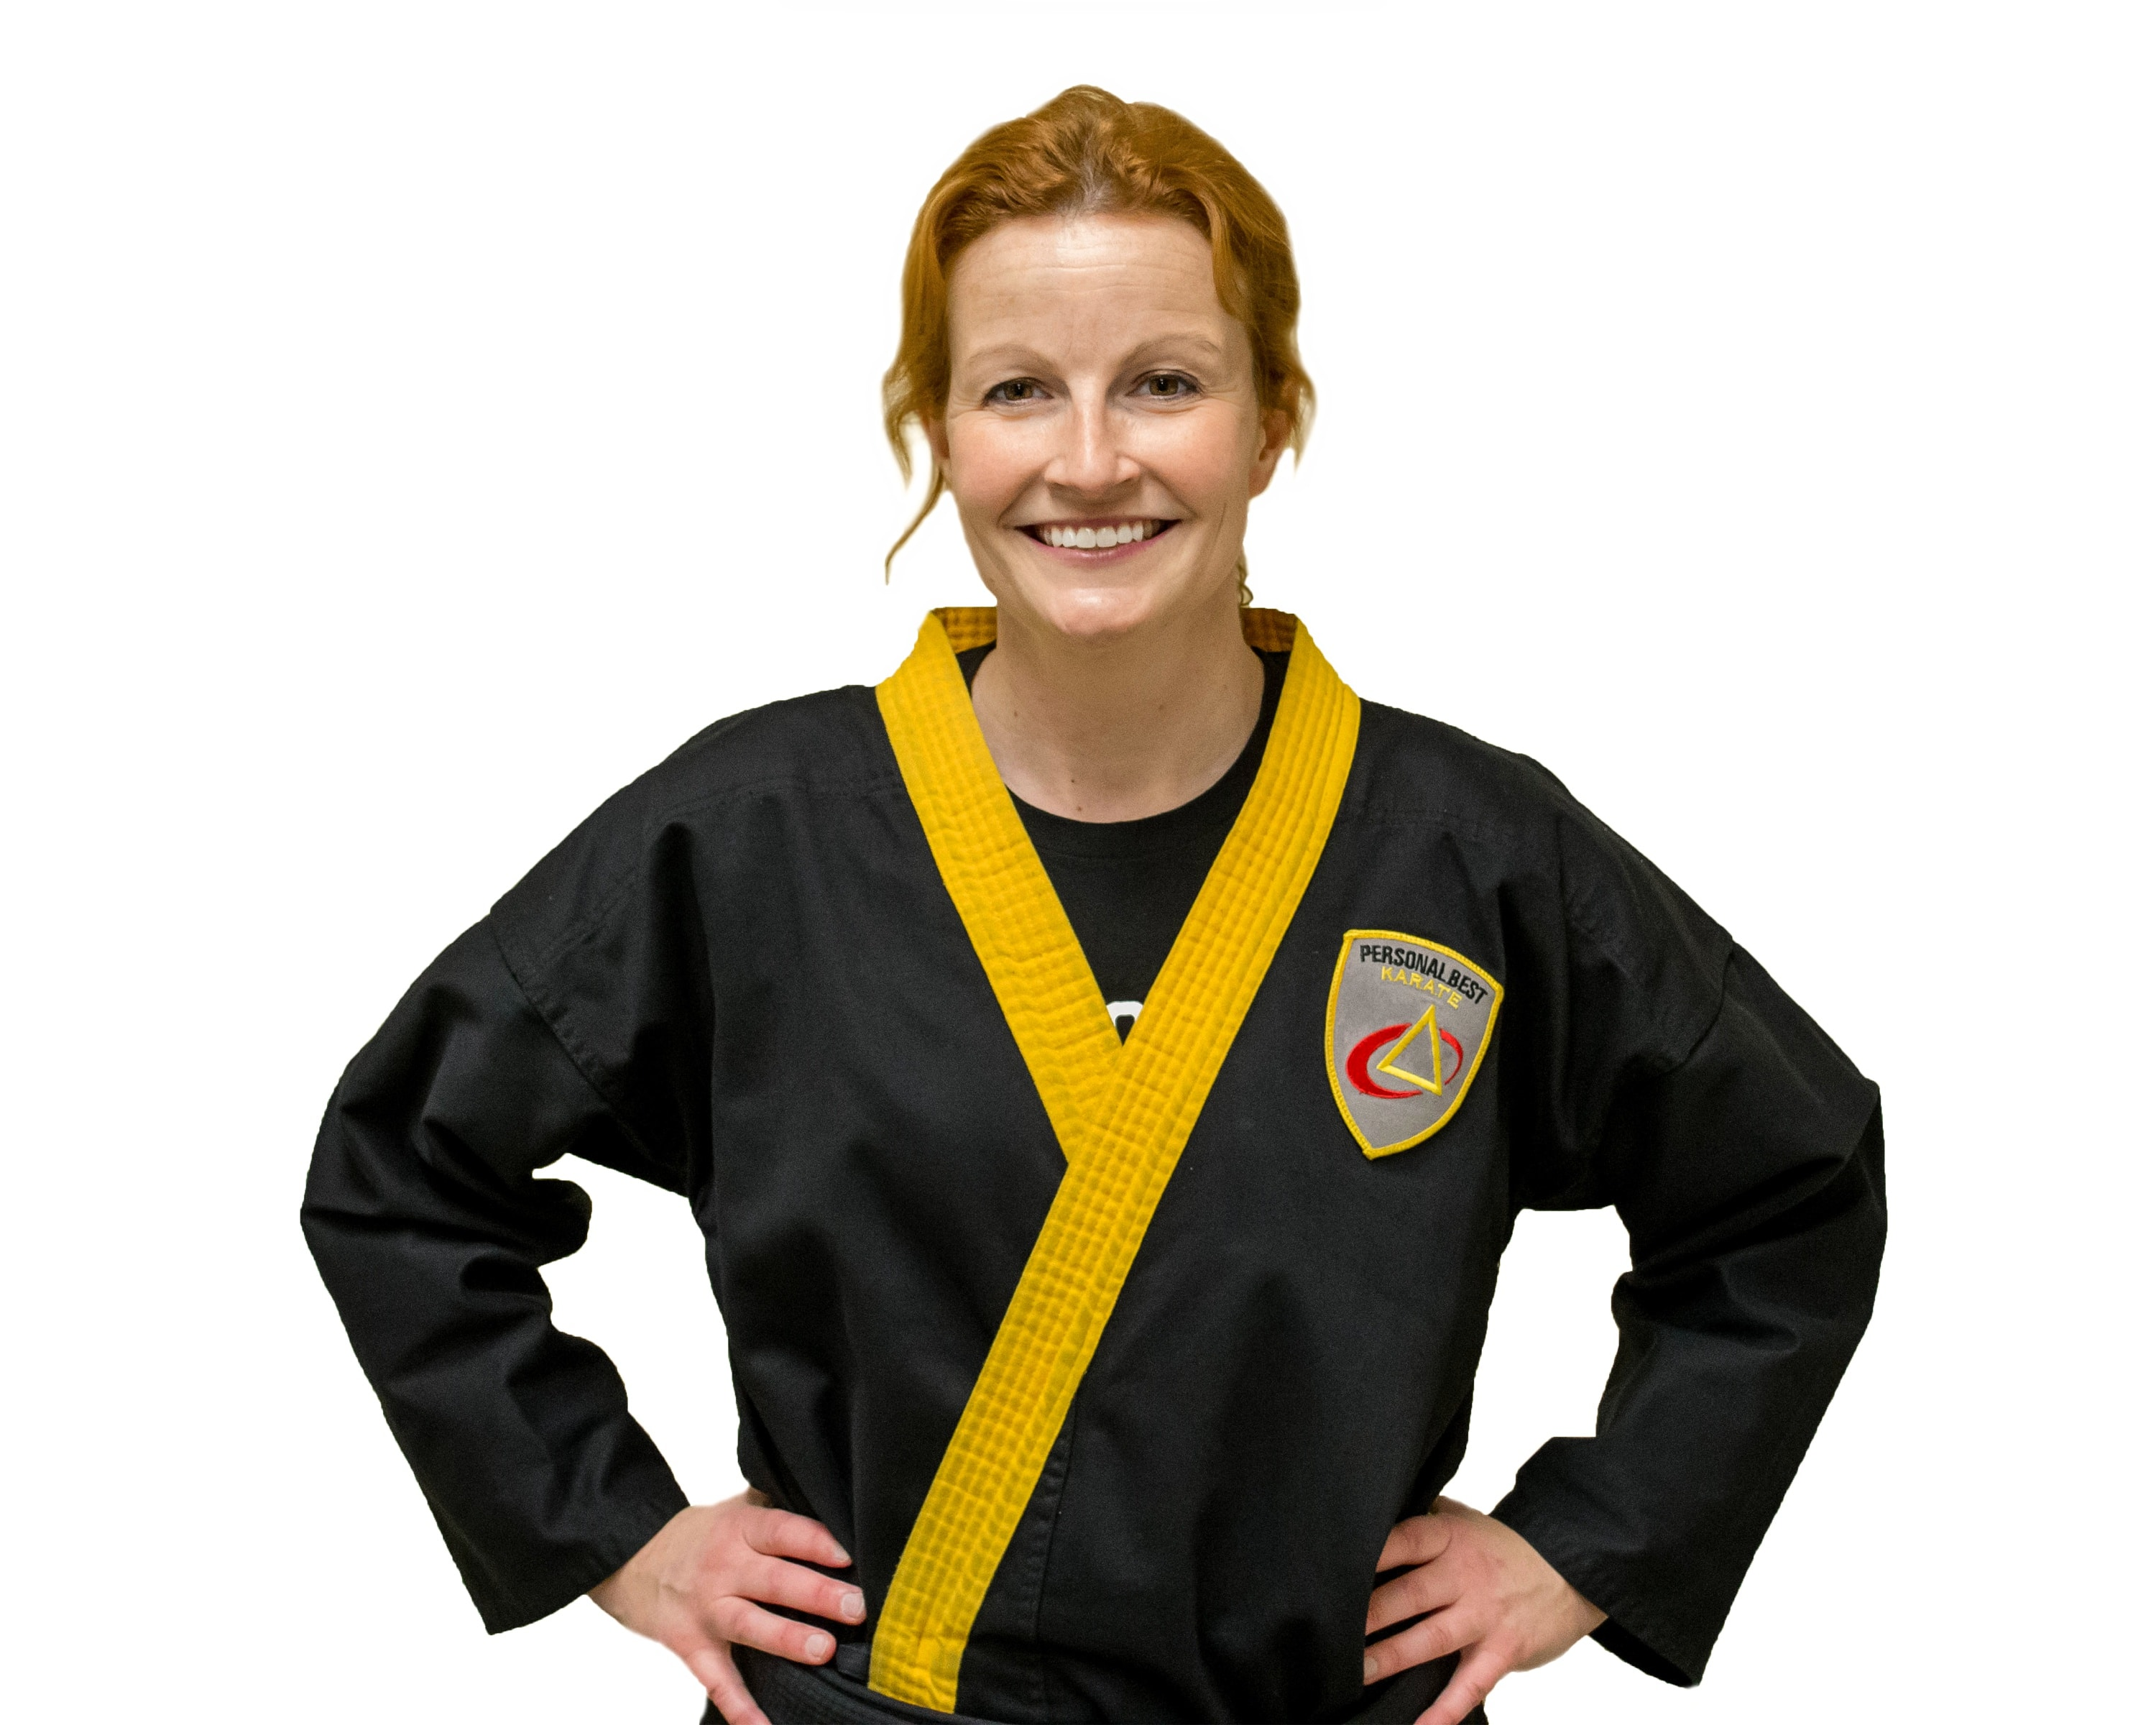 Stacey Caron in Norton - Personal Best Karate